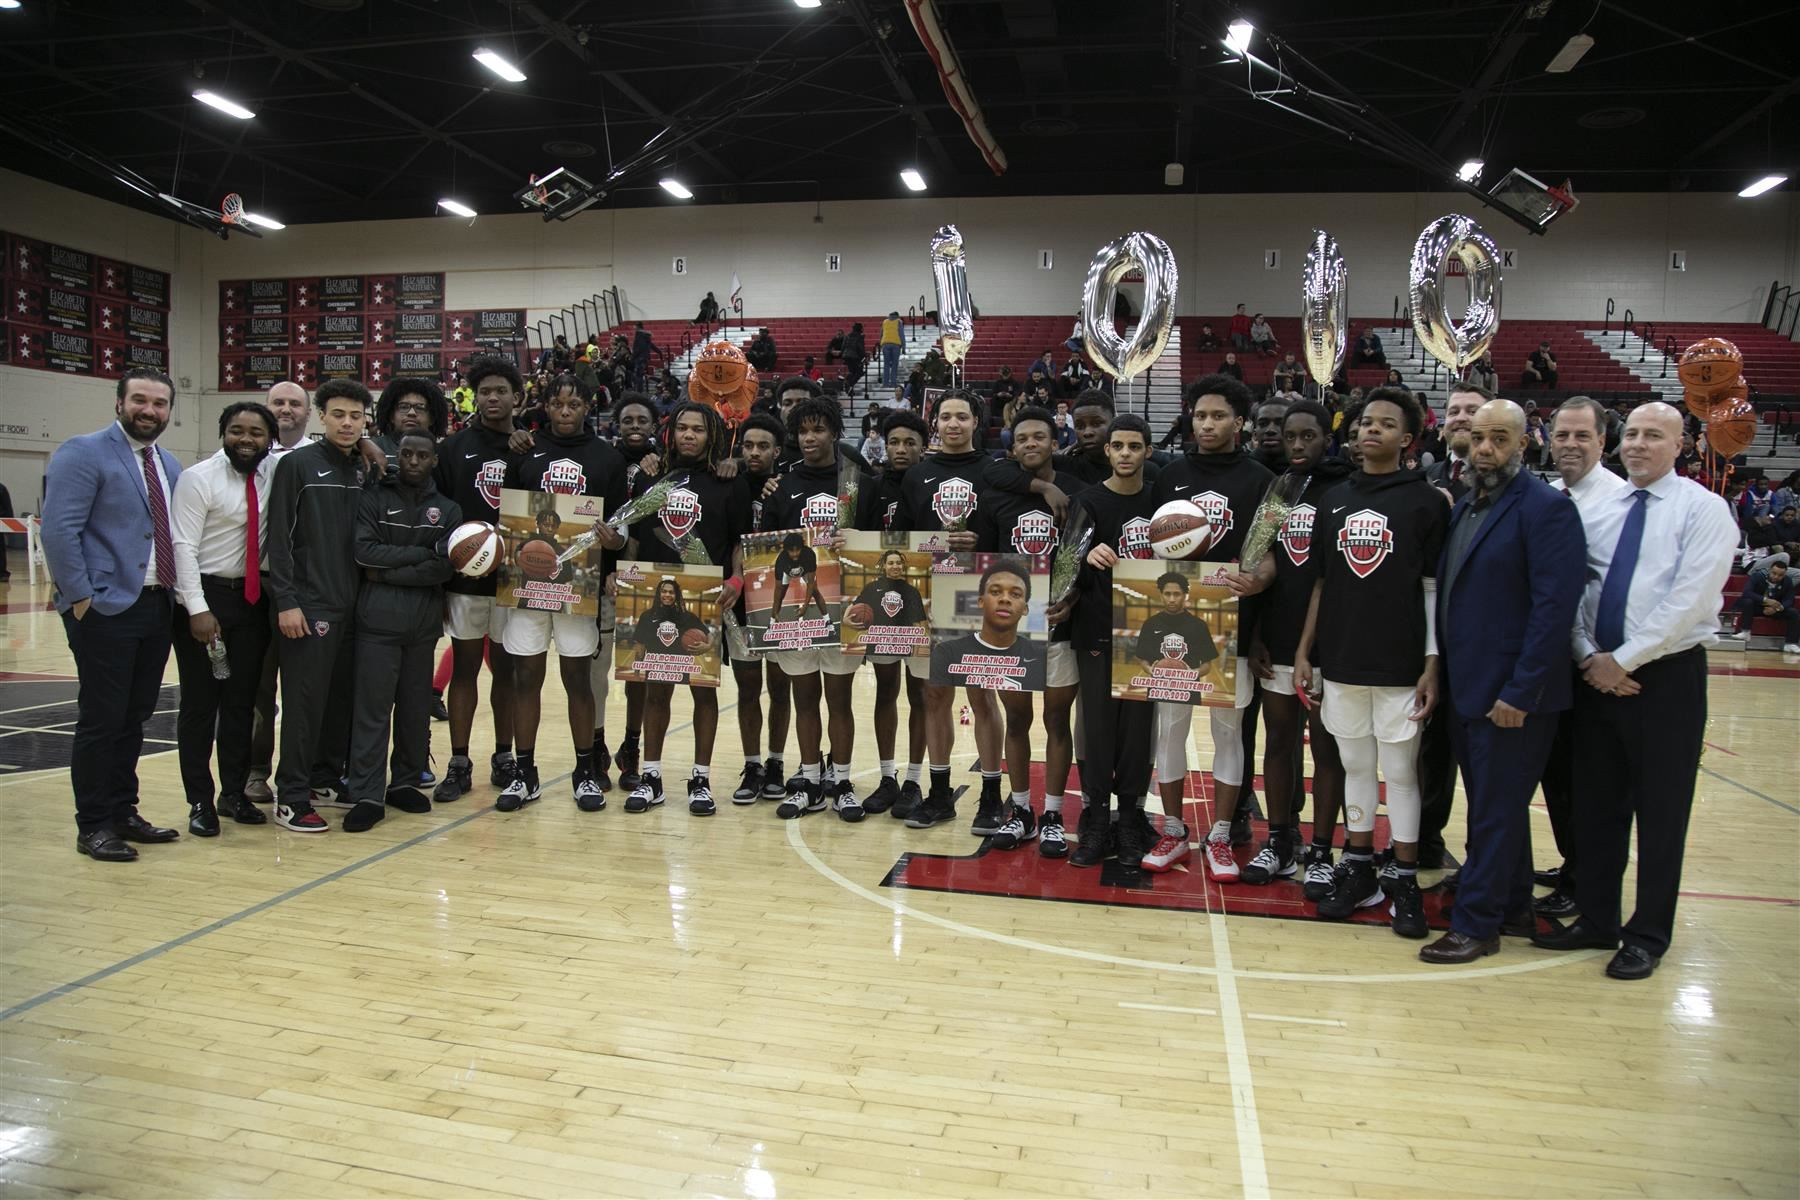 Senior Night @ the Dunn Sport Center